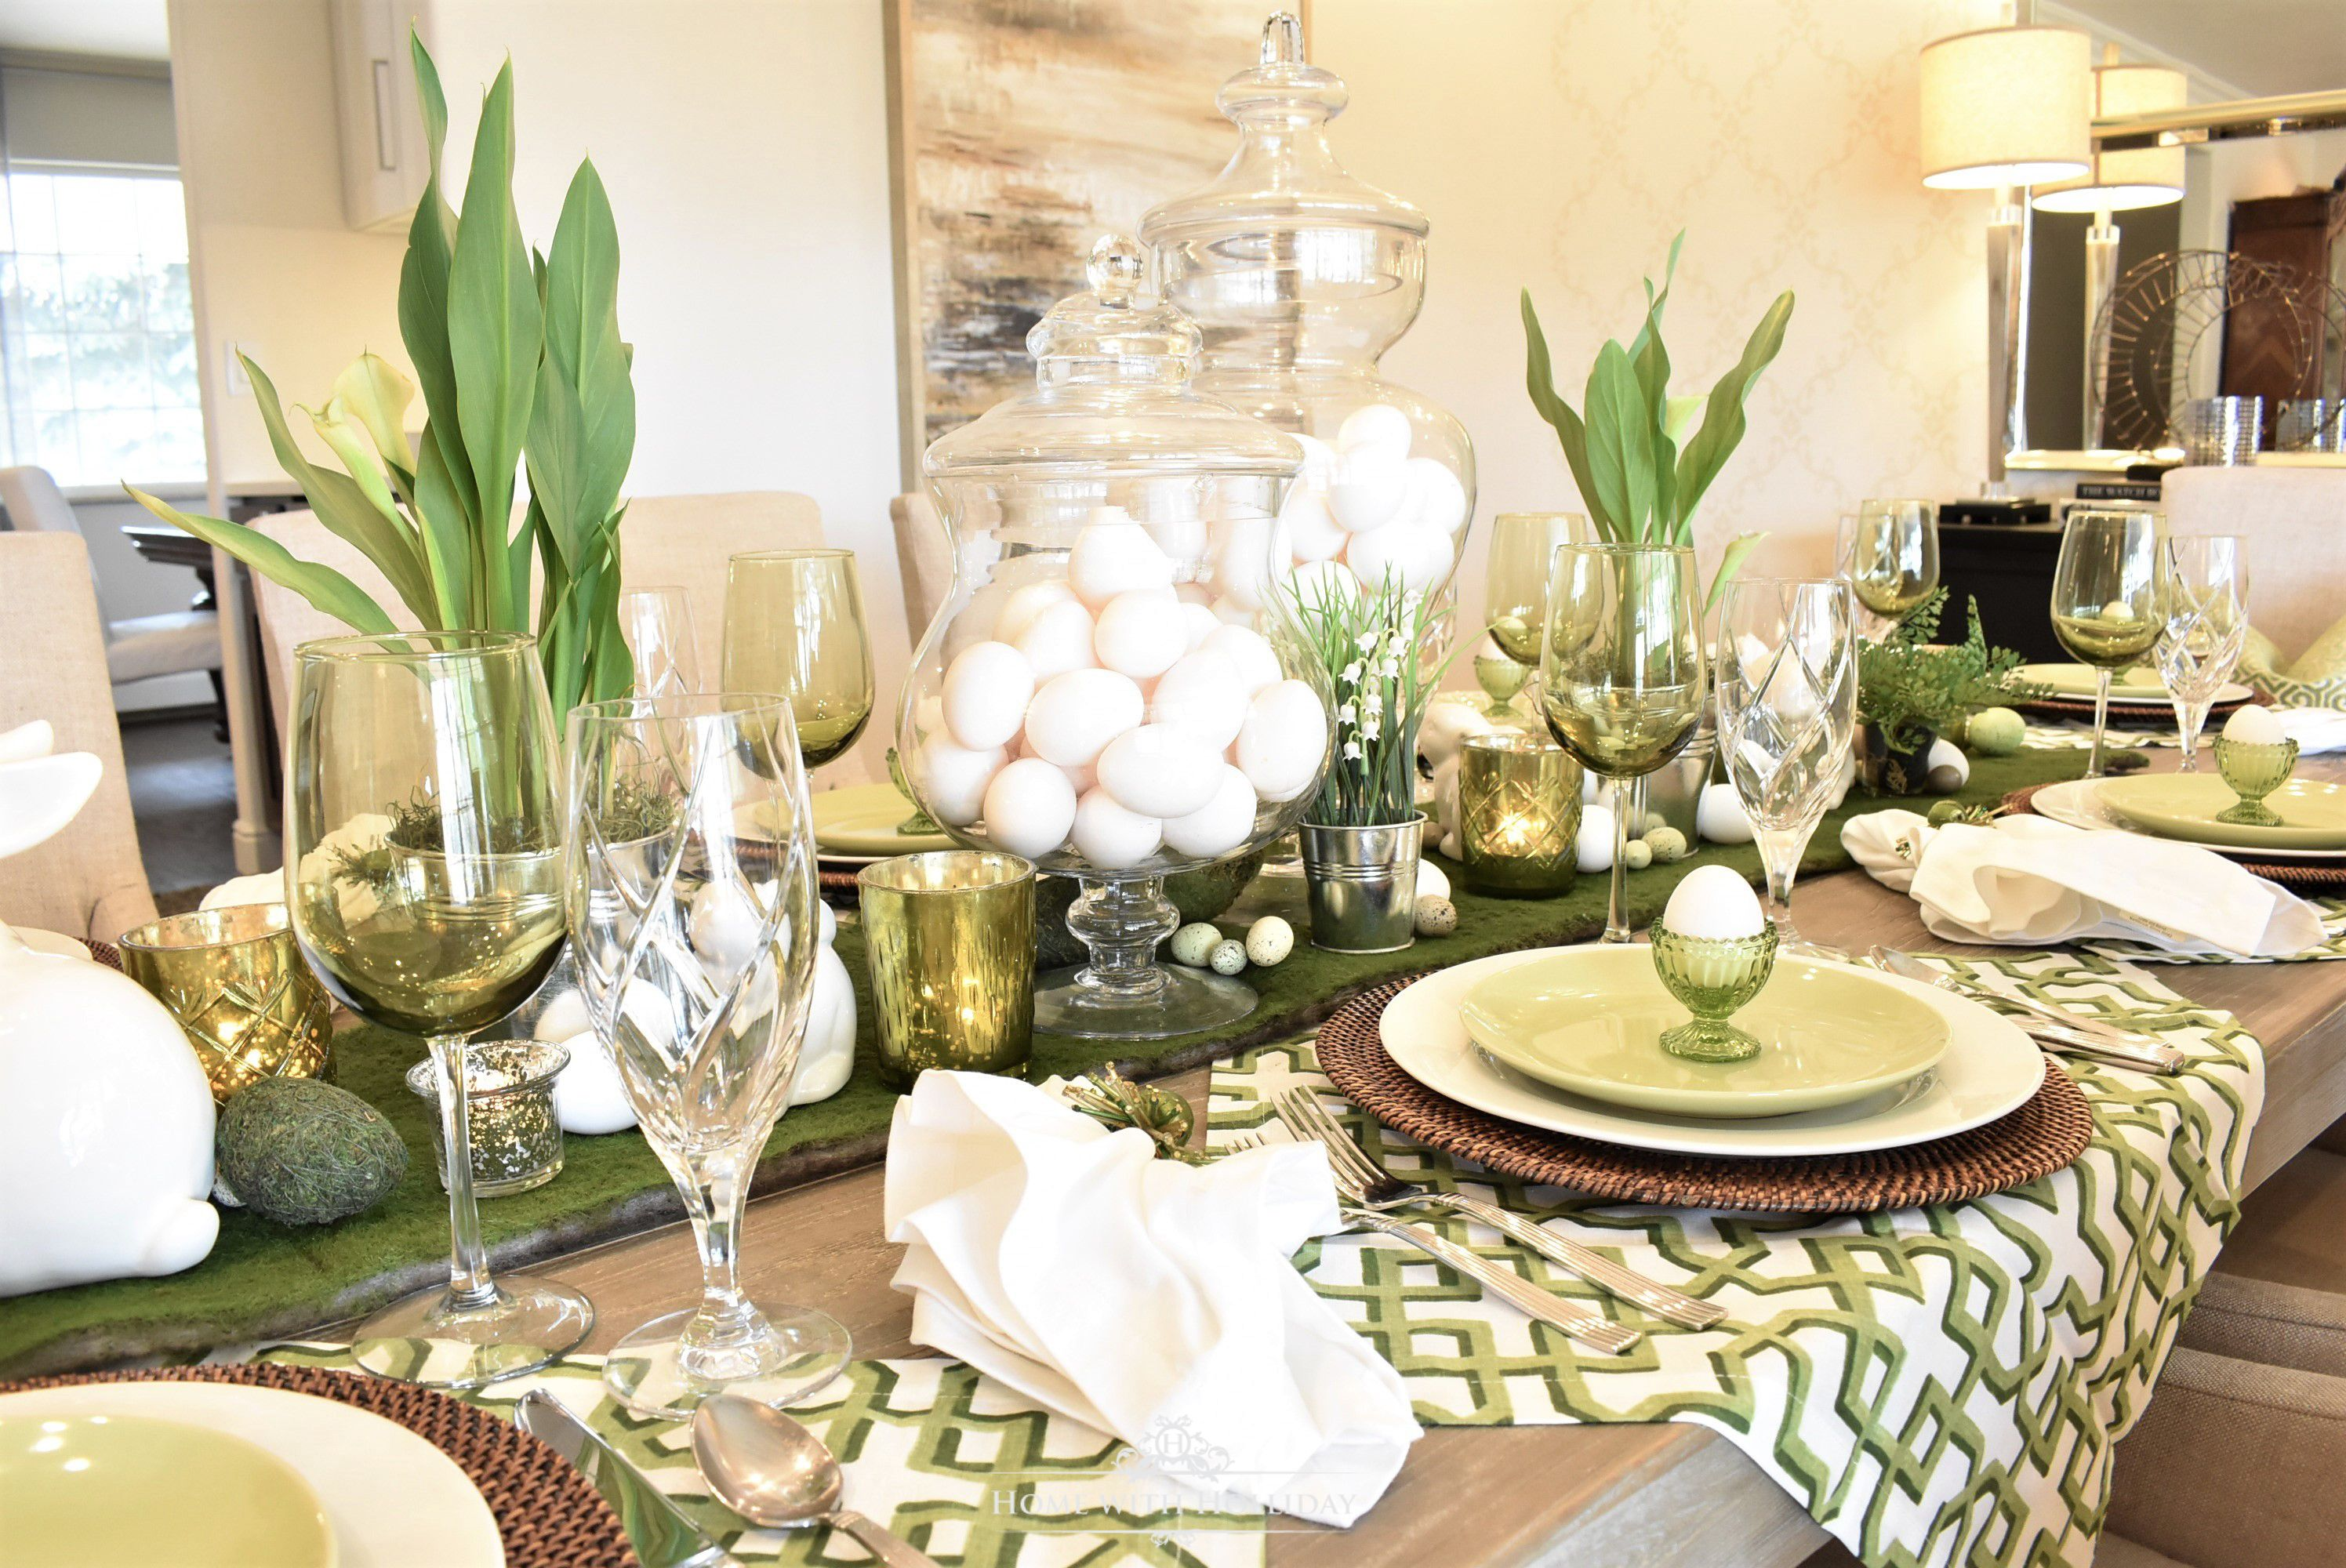 40 Diy Easter Table Decor Ideas Homemade Easter Centerpieces